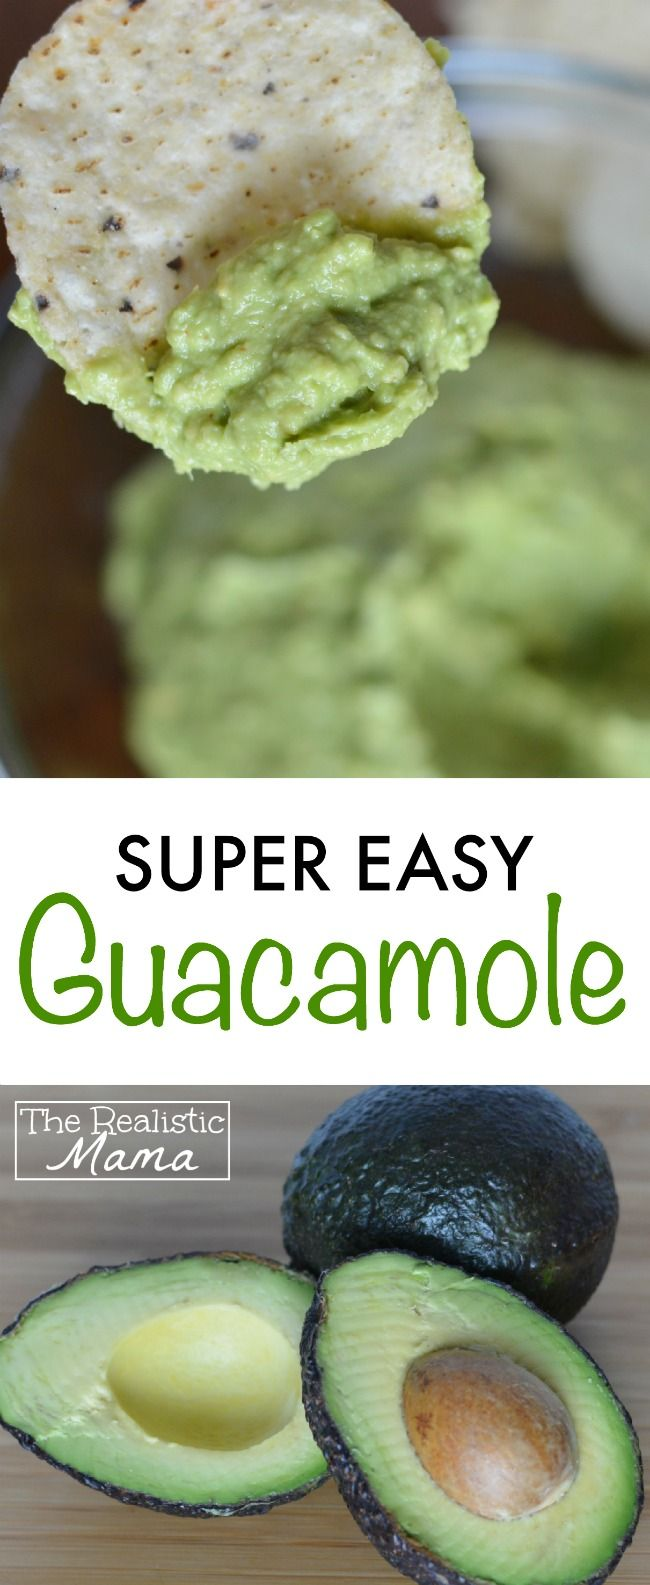 Super Easy Guacamole Recipe.  I tried making this...it's ok when you need to make a very quick guacamole.